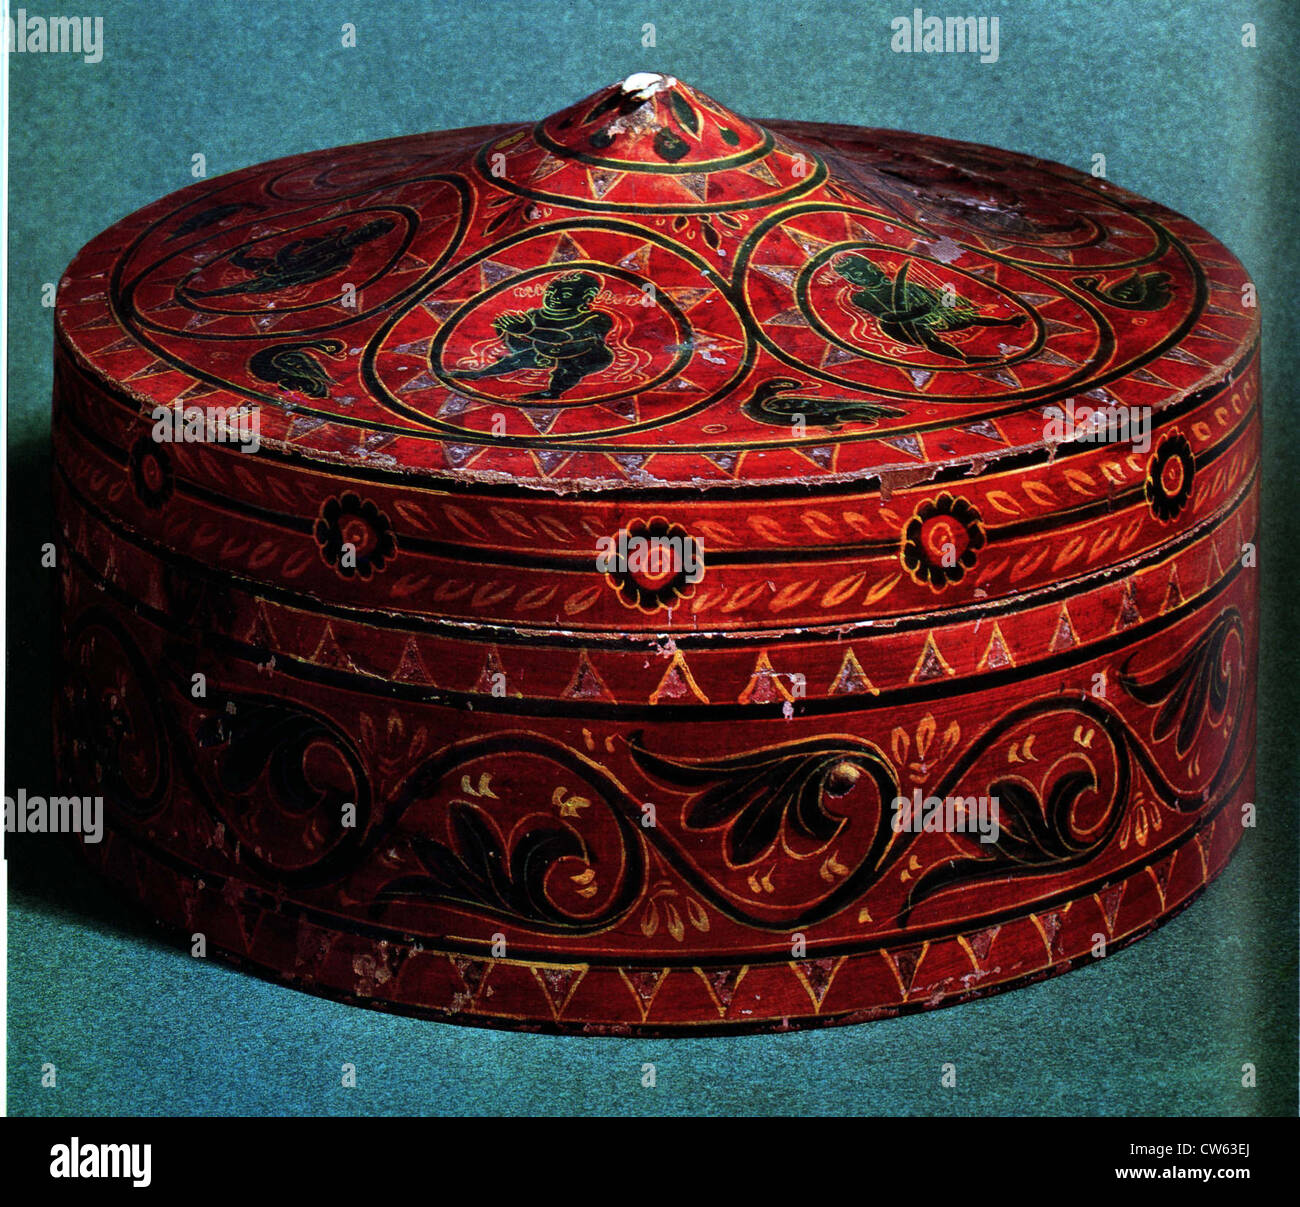 Polychrome wooden reliquary box - Stock Image